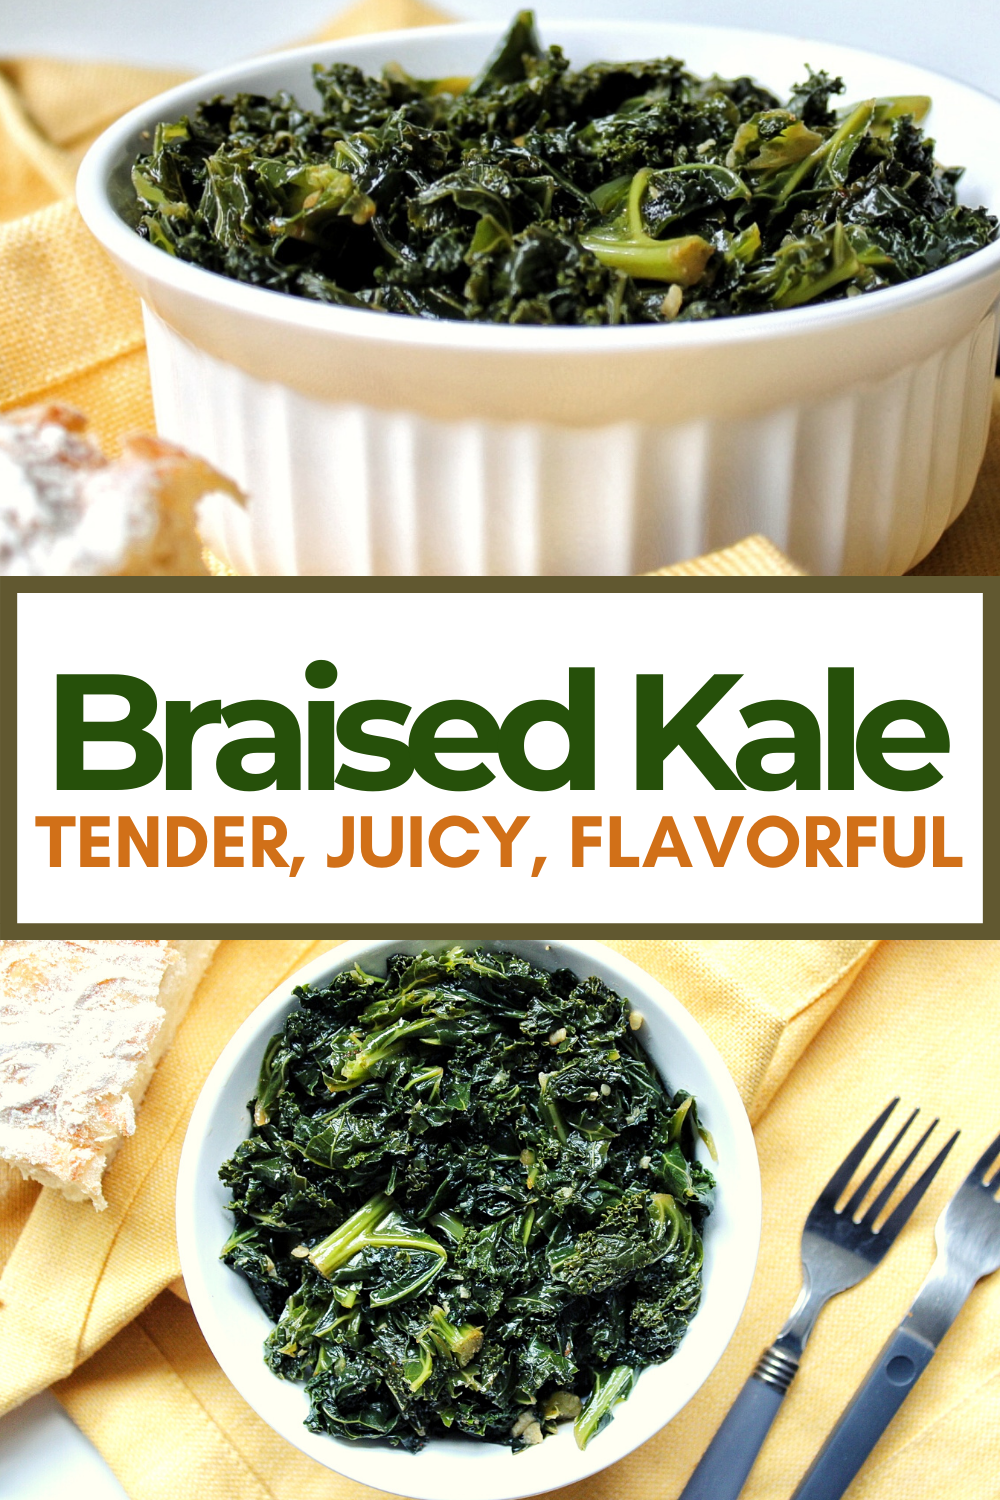 Garlicky, tender braised kale made with fresh garlic and broth.